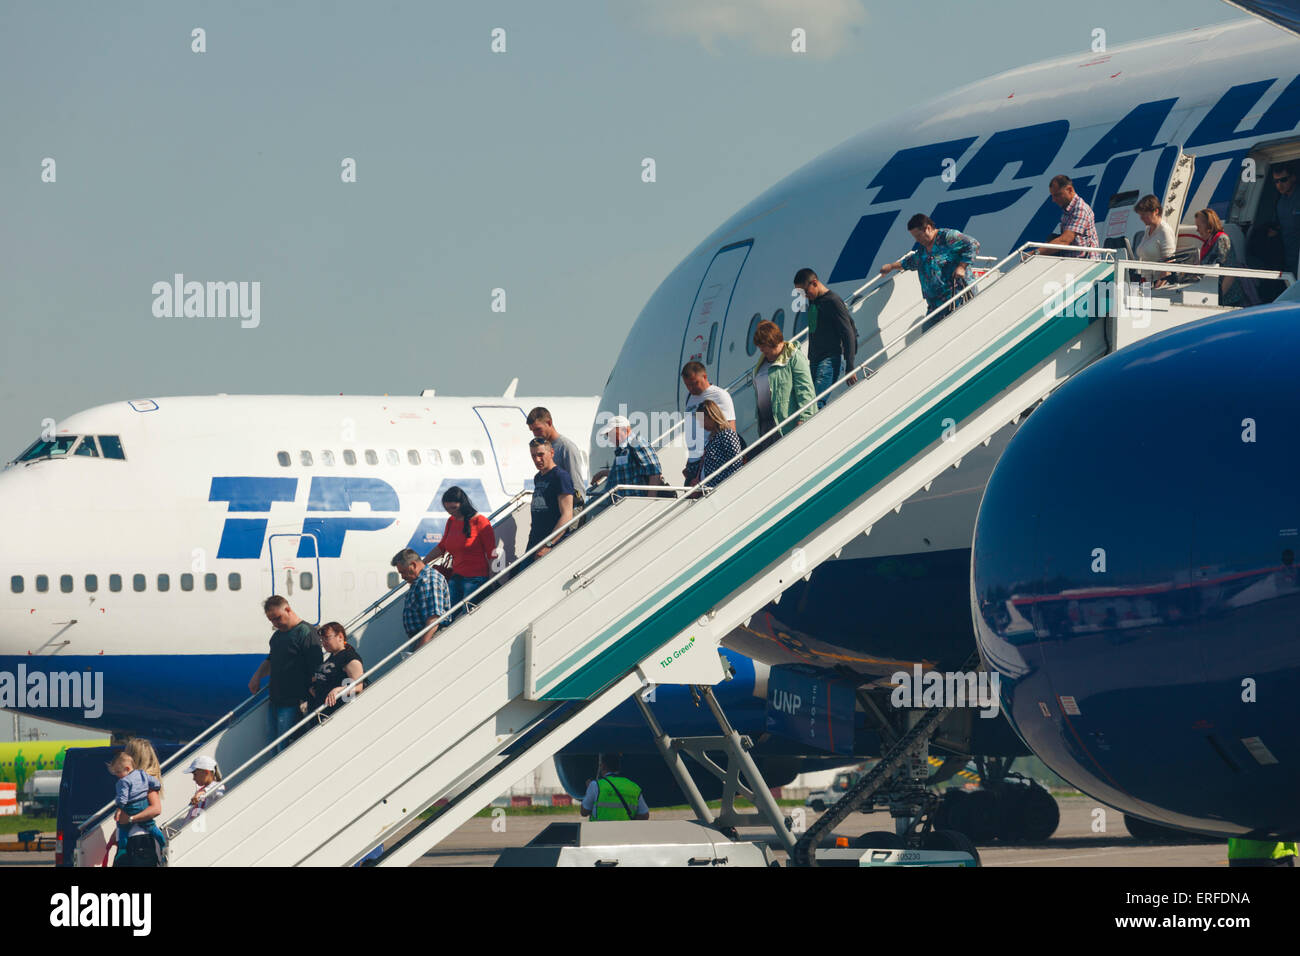 MOSCOW, RUSSIAN FEDERATION - MAY 26, 2015: Passengers leaving airplane. Oficial spotting in Domodedovo airport (DME) - Stock Image